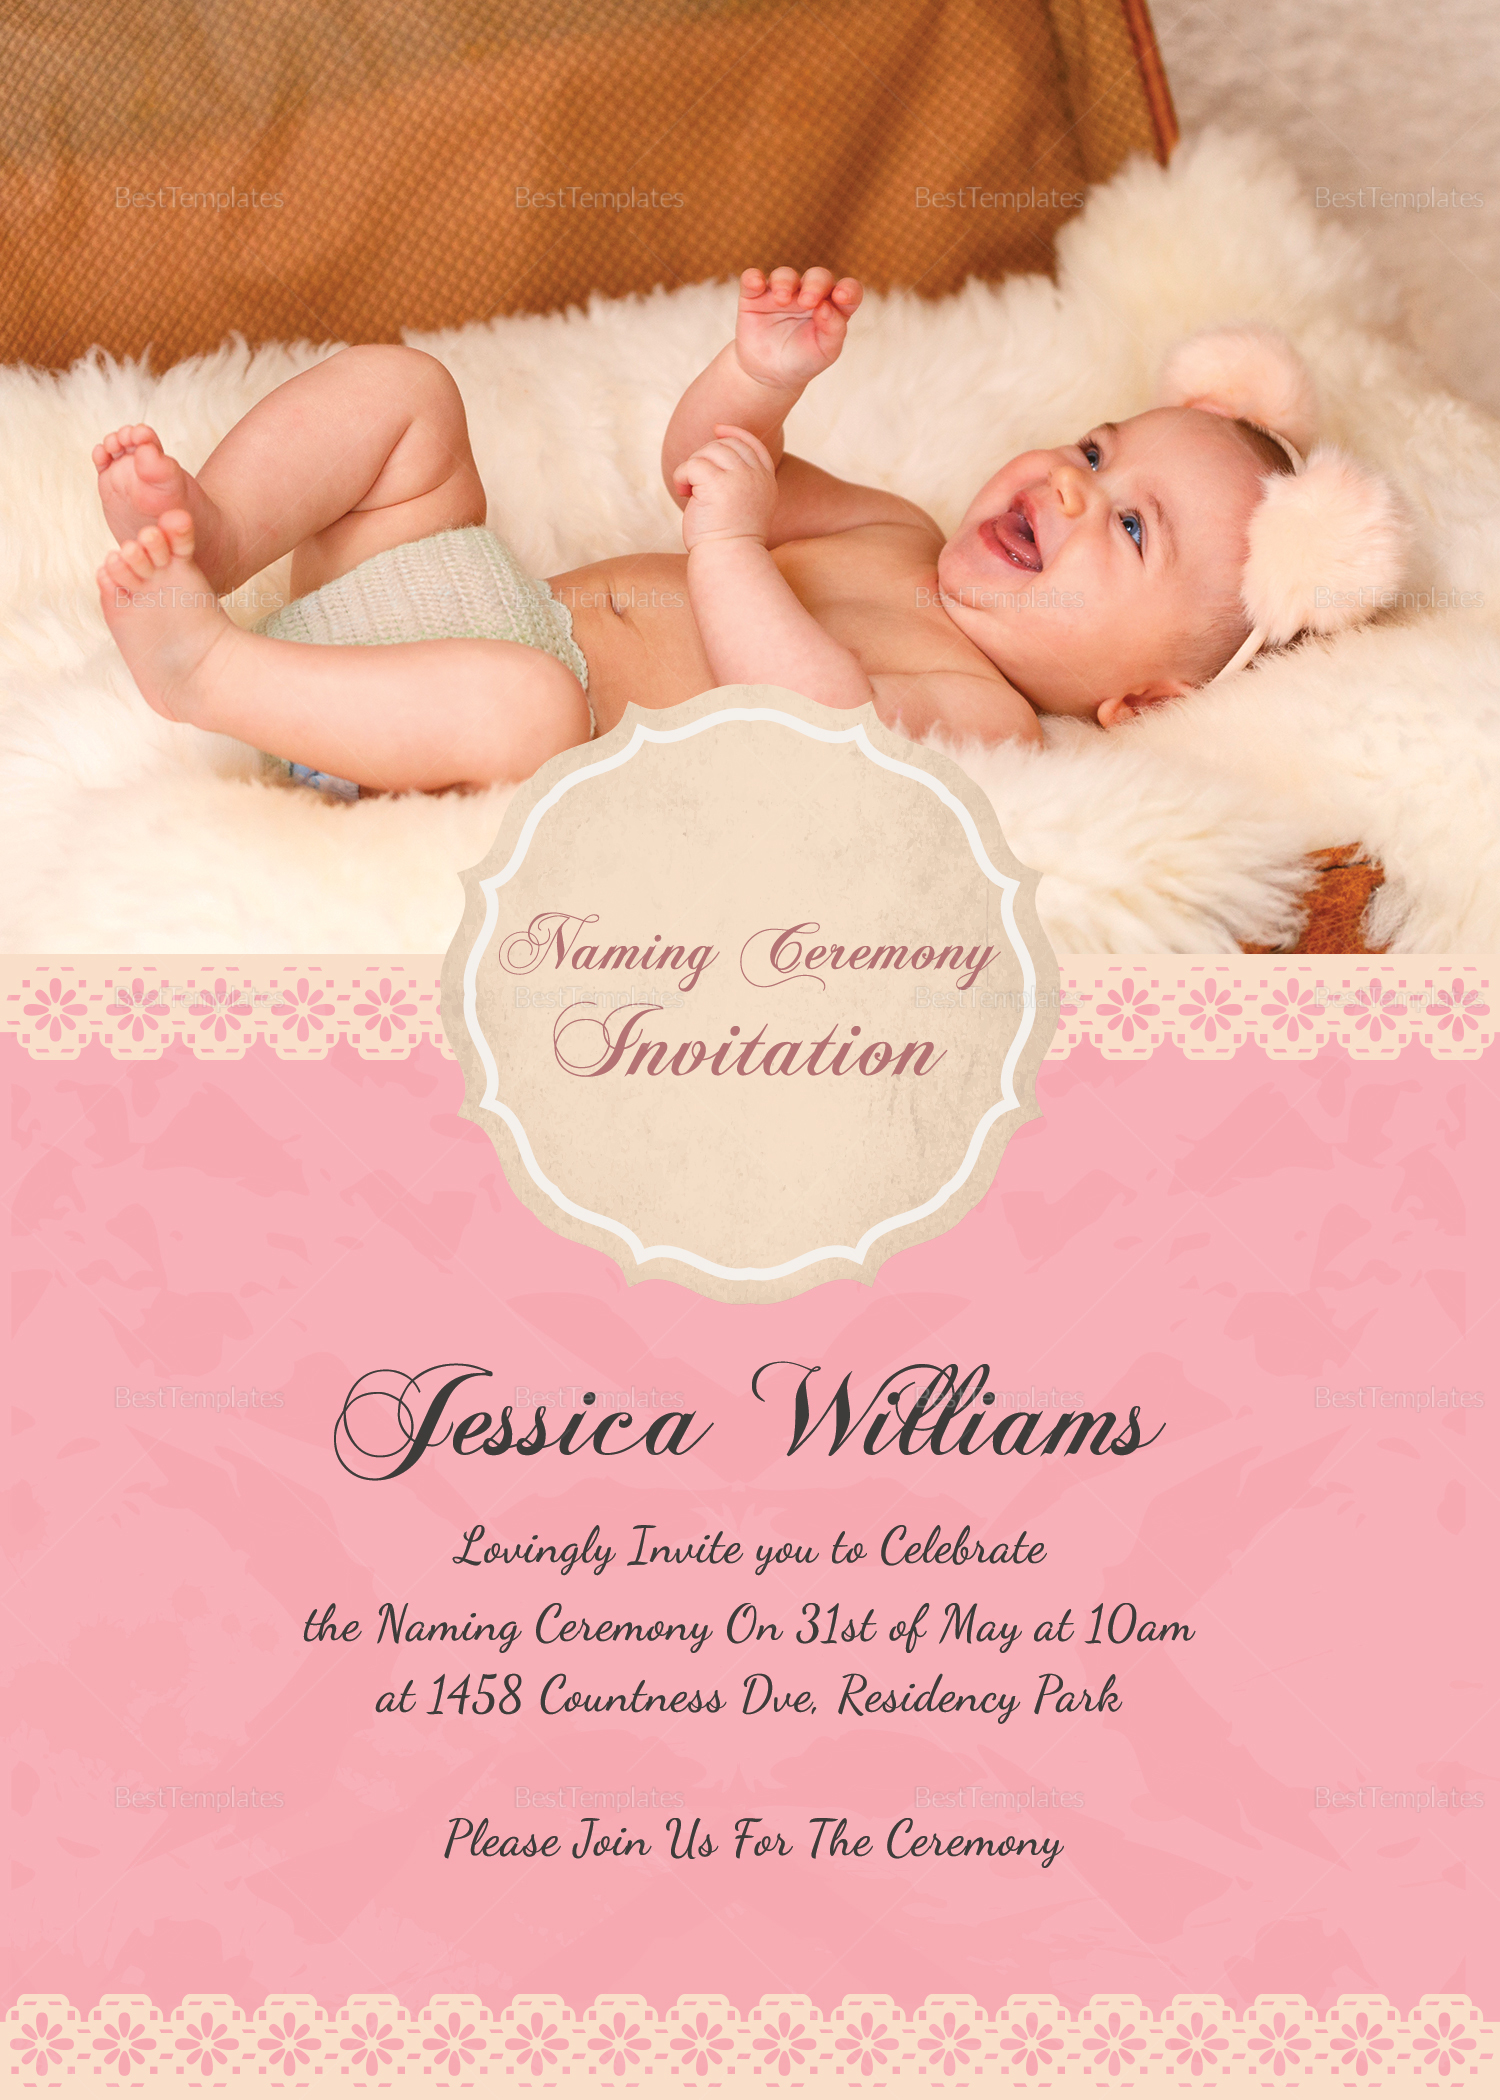 happy baby naming ceremony invitation card design template